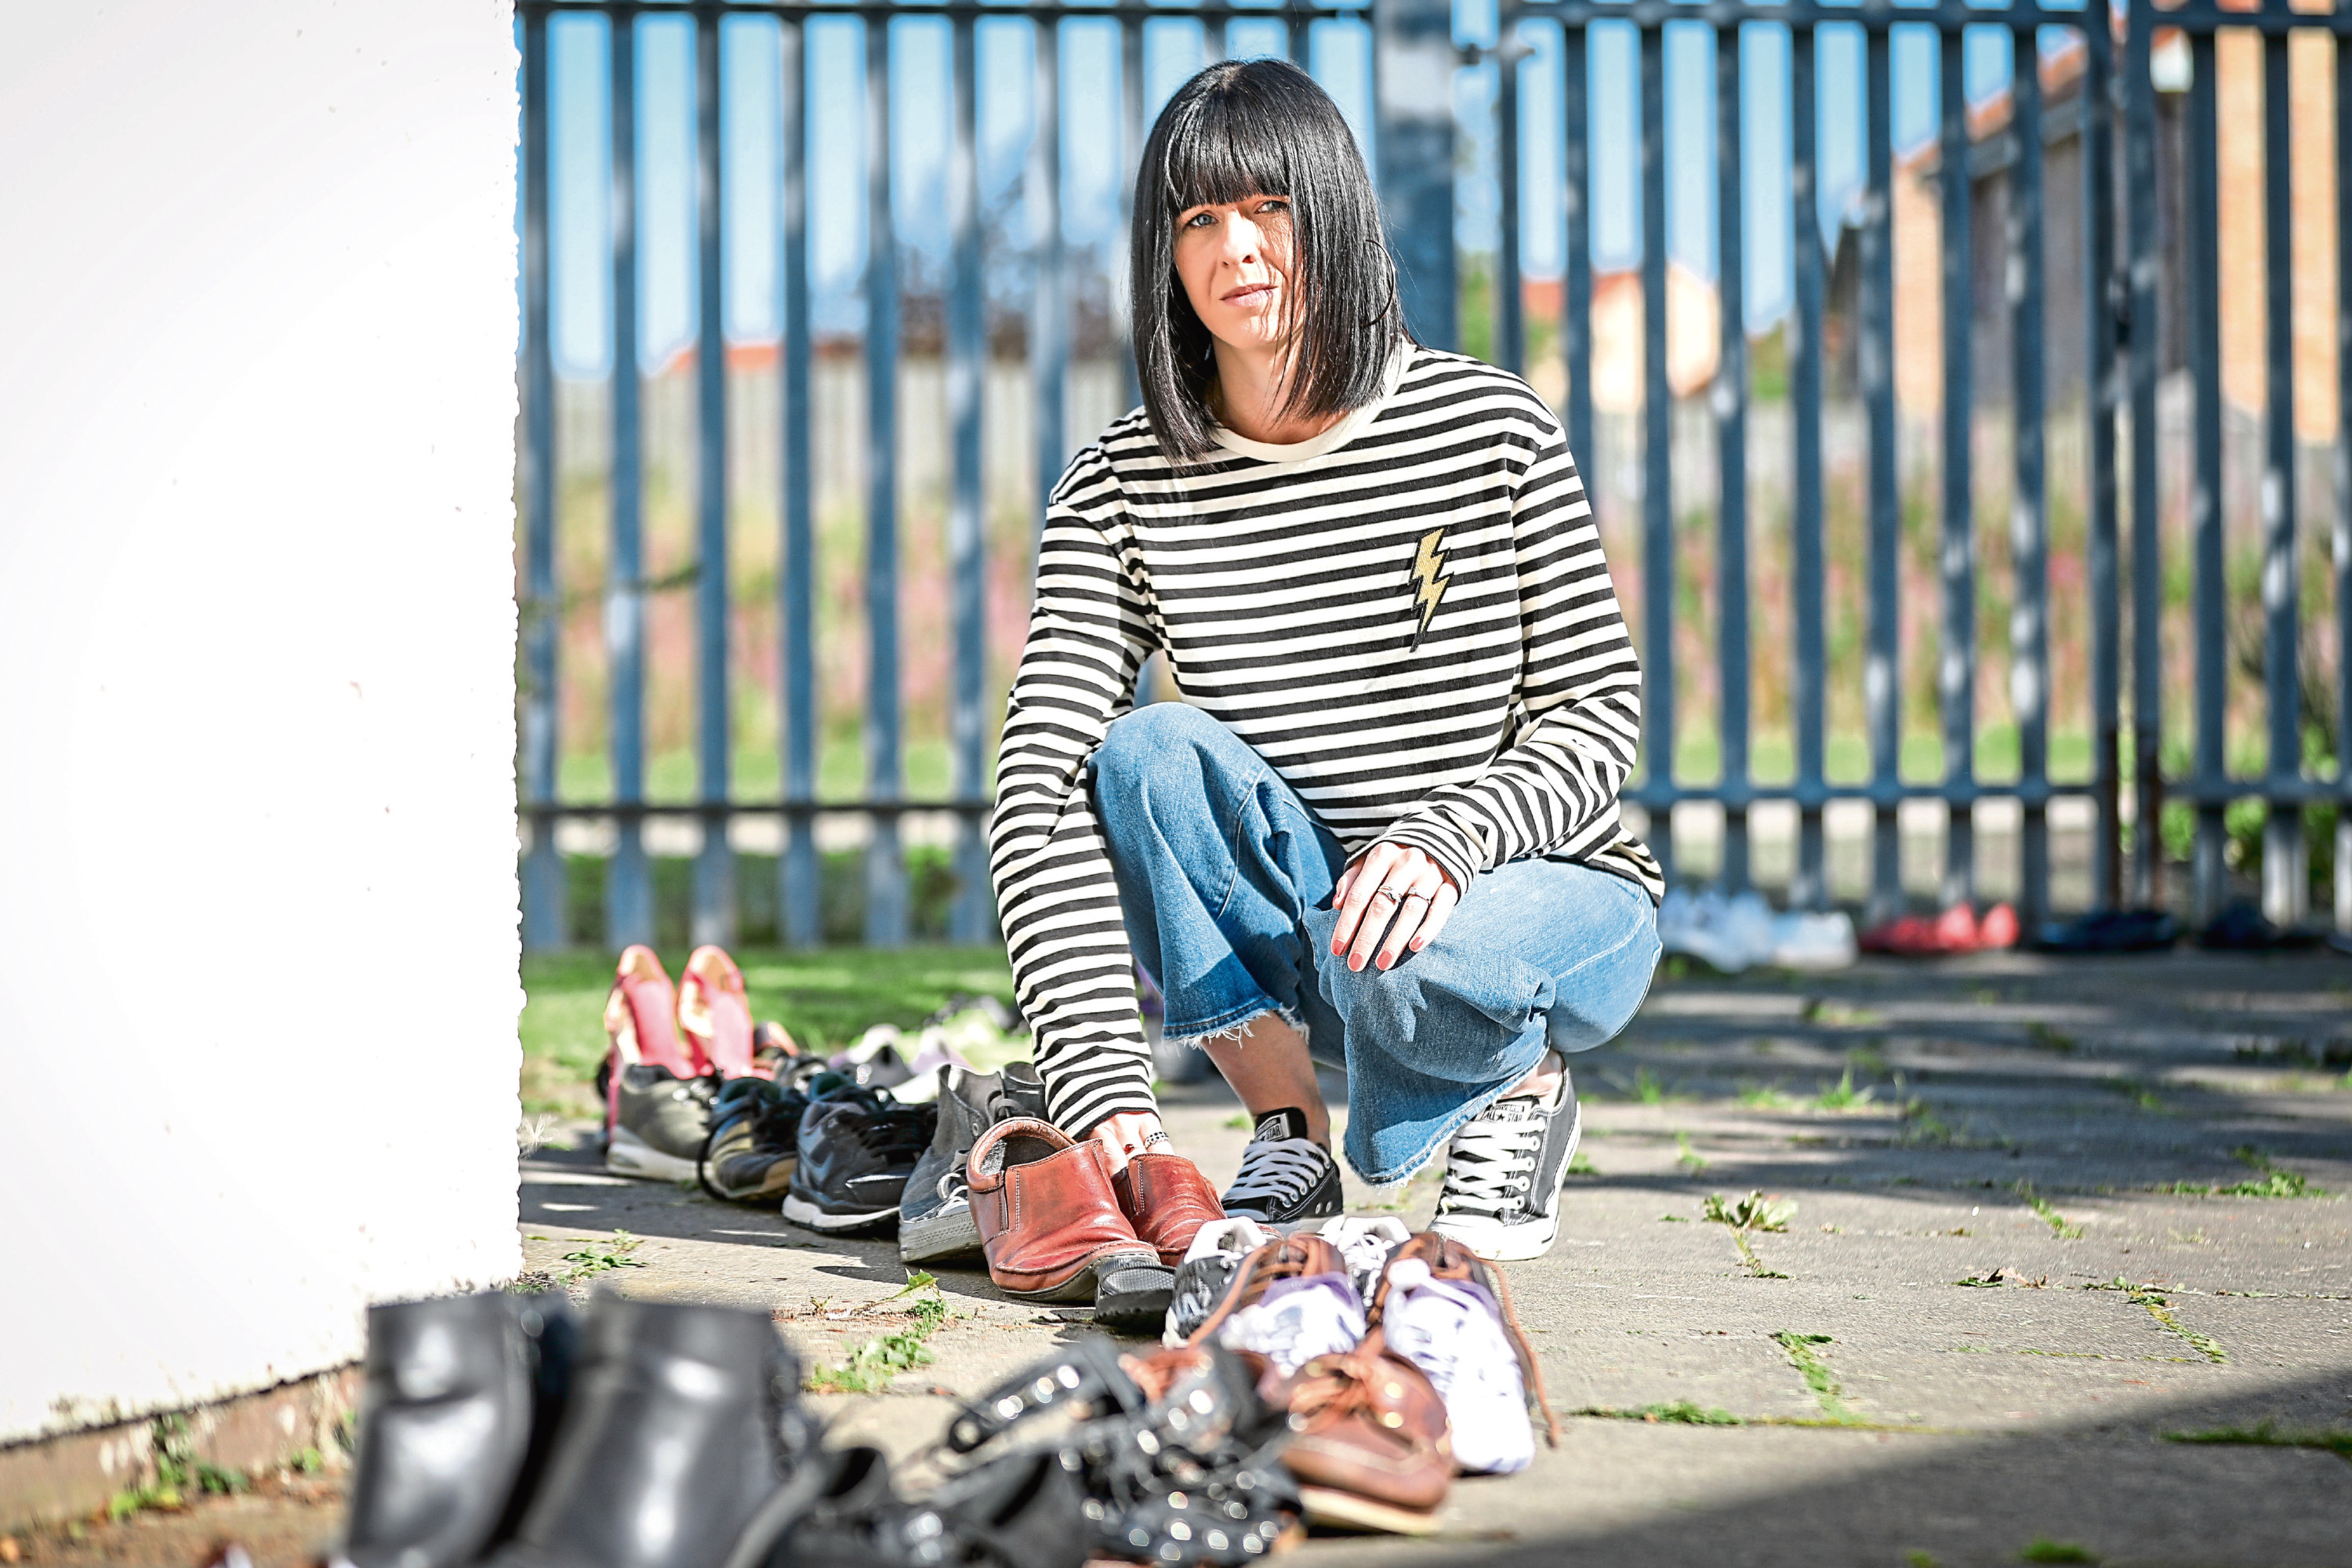 Bobbie Haggart, advanced practitioner at Addaction, with the shoes and cross lined up for the service